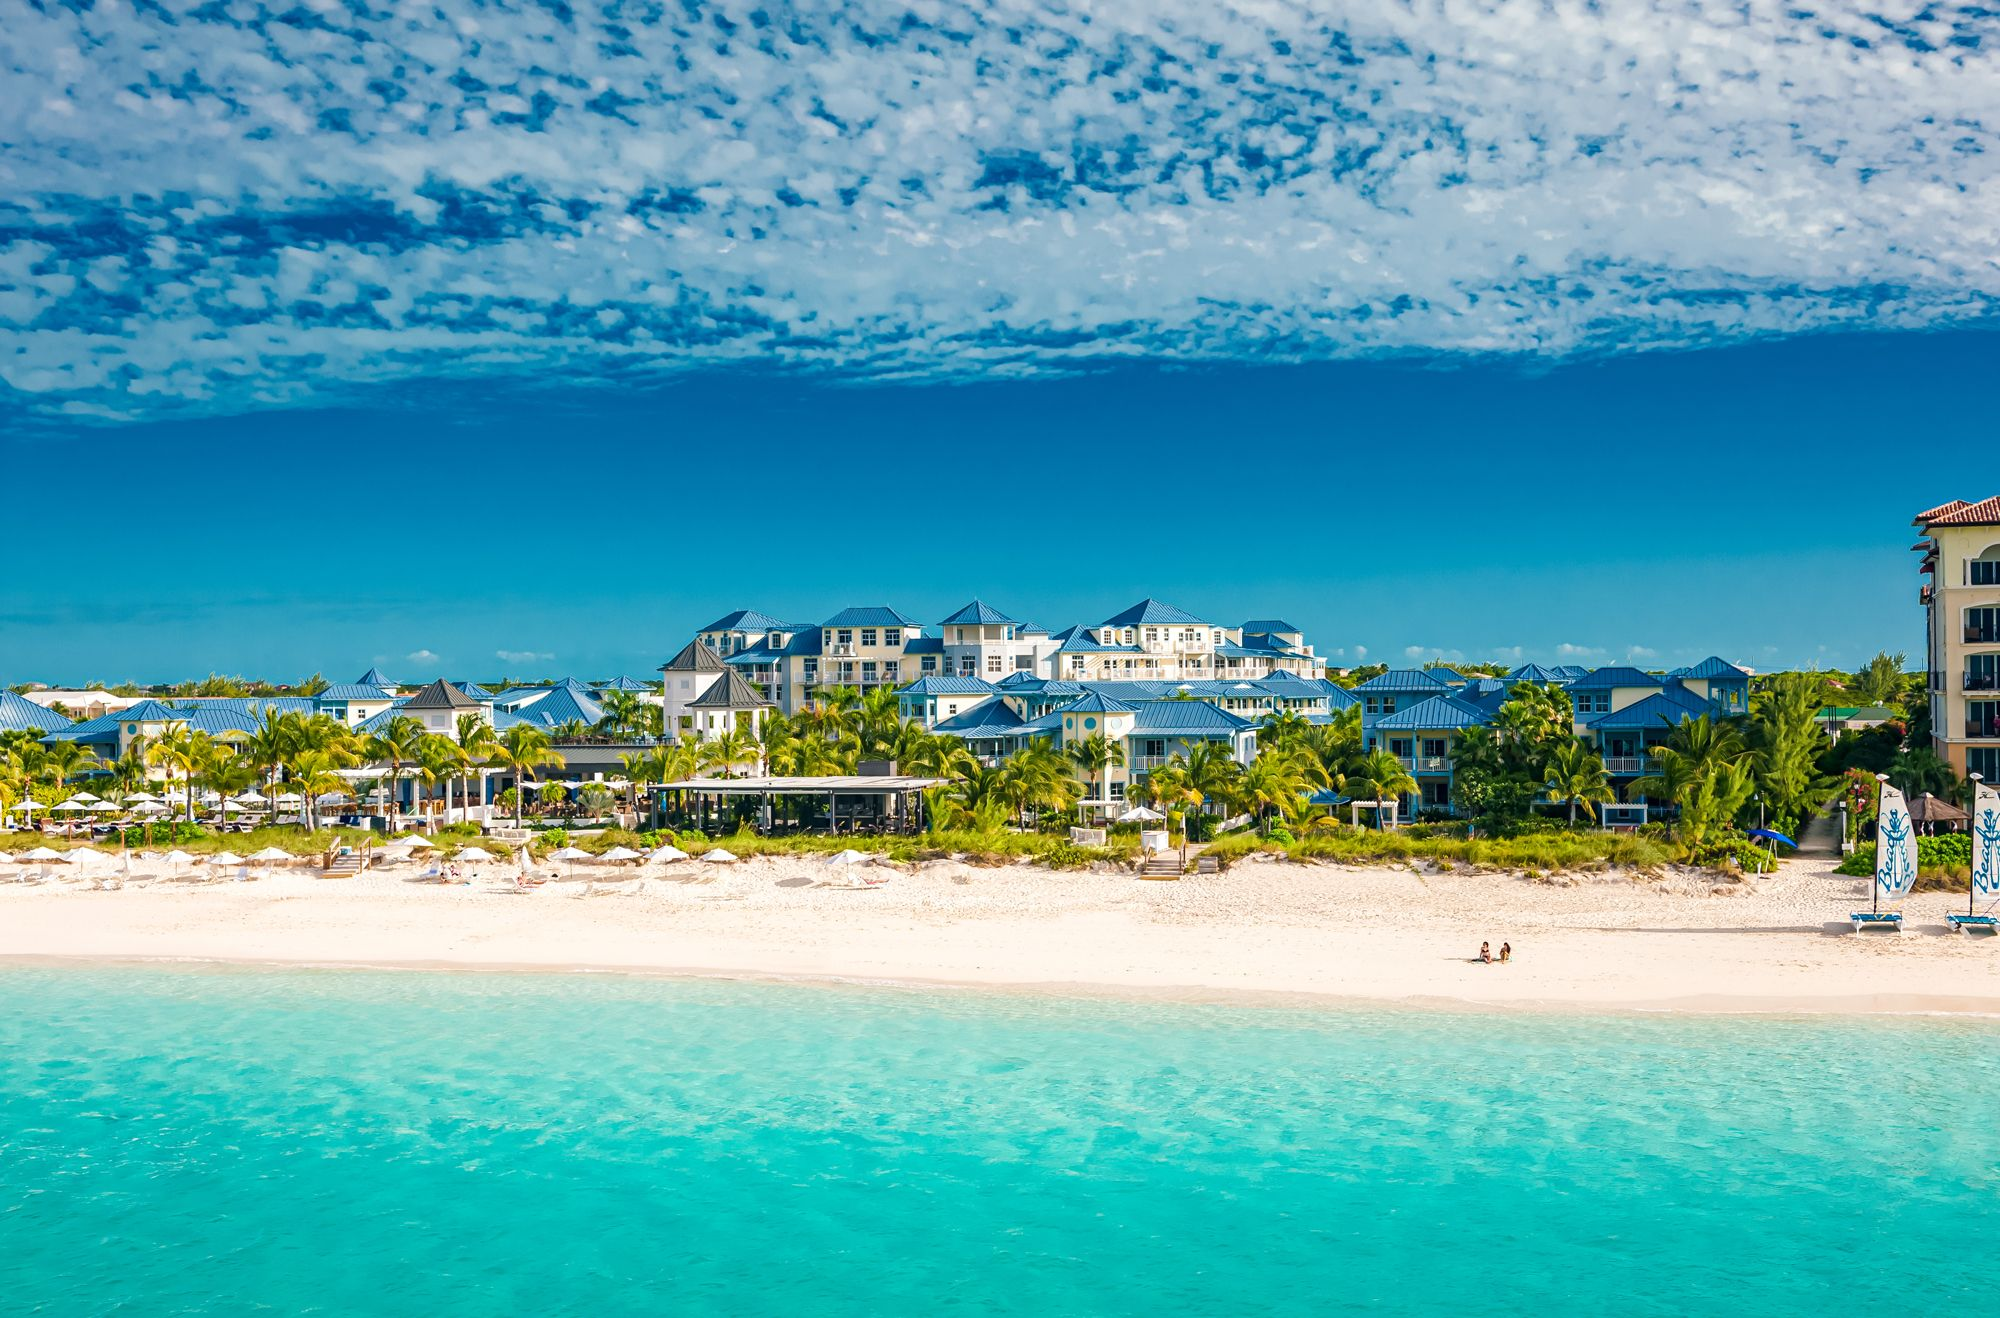 Beaches Turks Caicos Aerial Beachfront